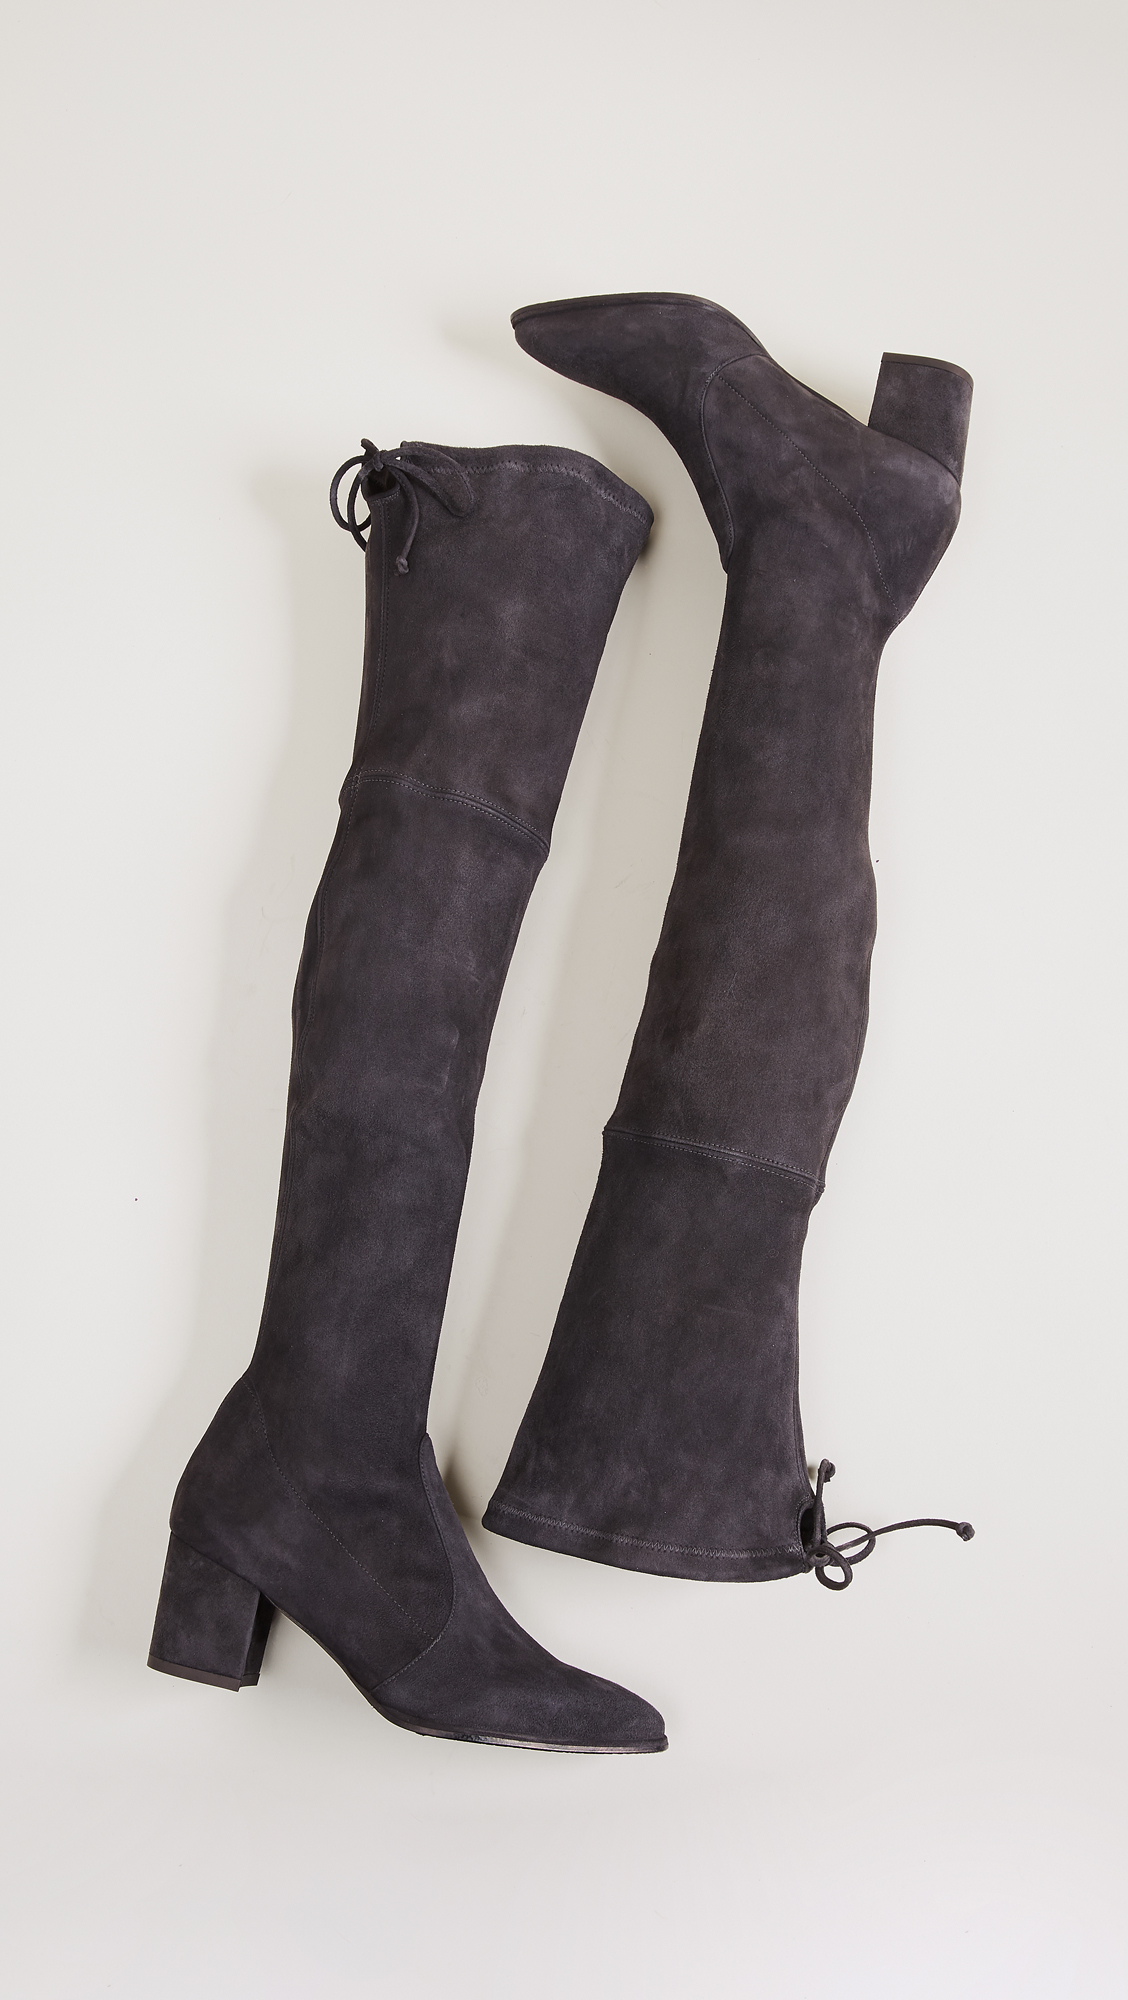 28d5d720bf2 Stuart Weitzman Thighland Over the Knee Boots